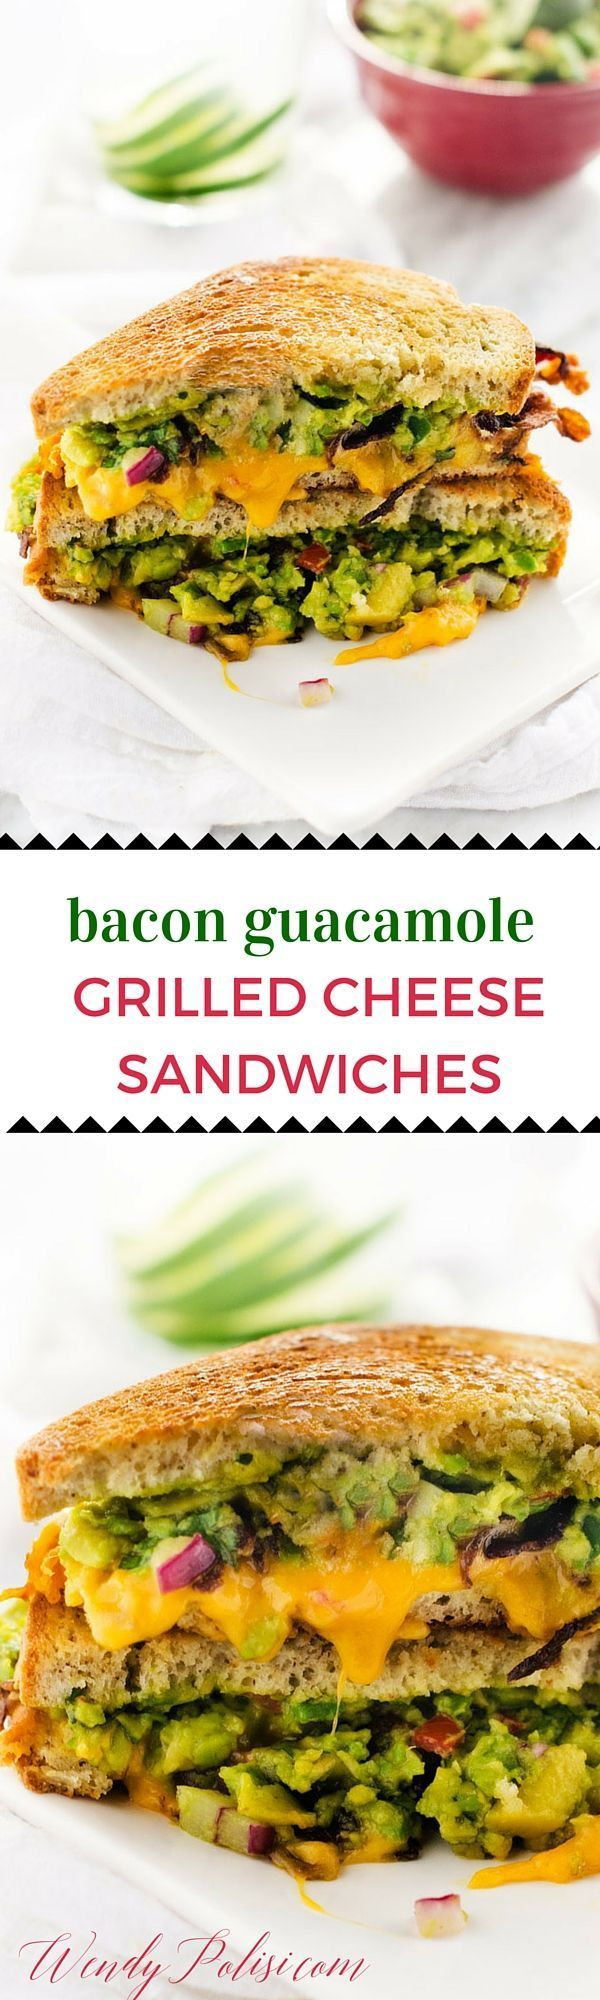 Chips And Guacamole Grilled Cheese Recipe — Dishmaps